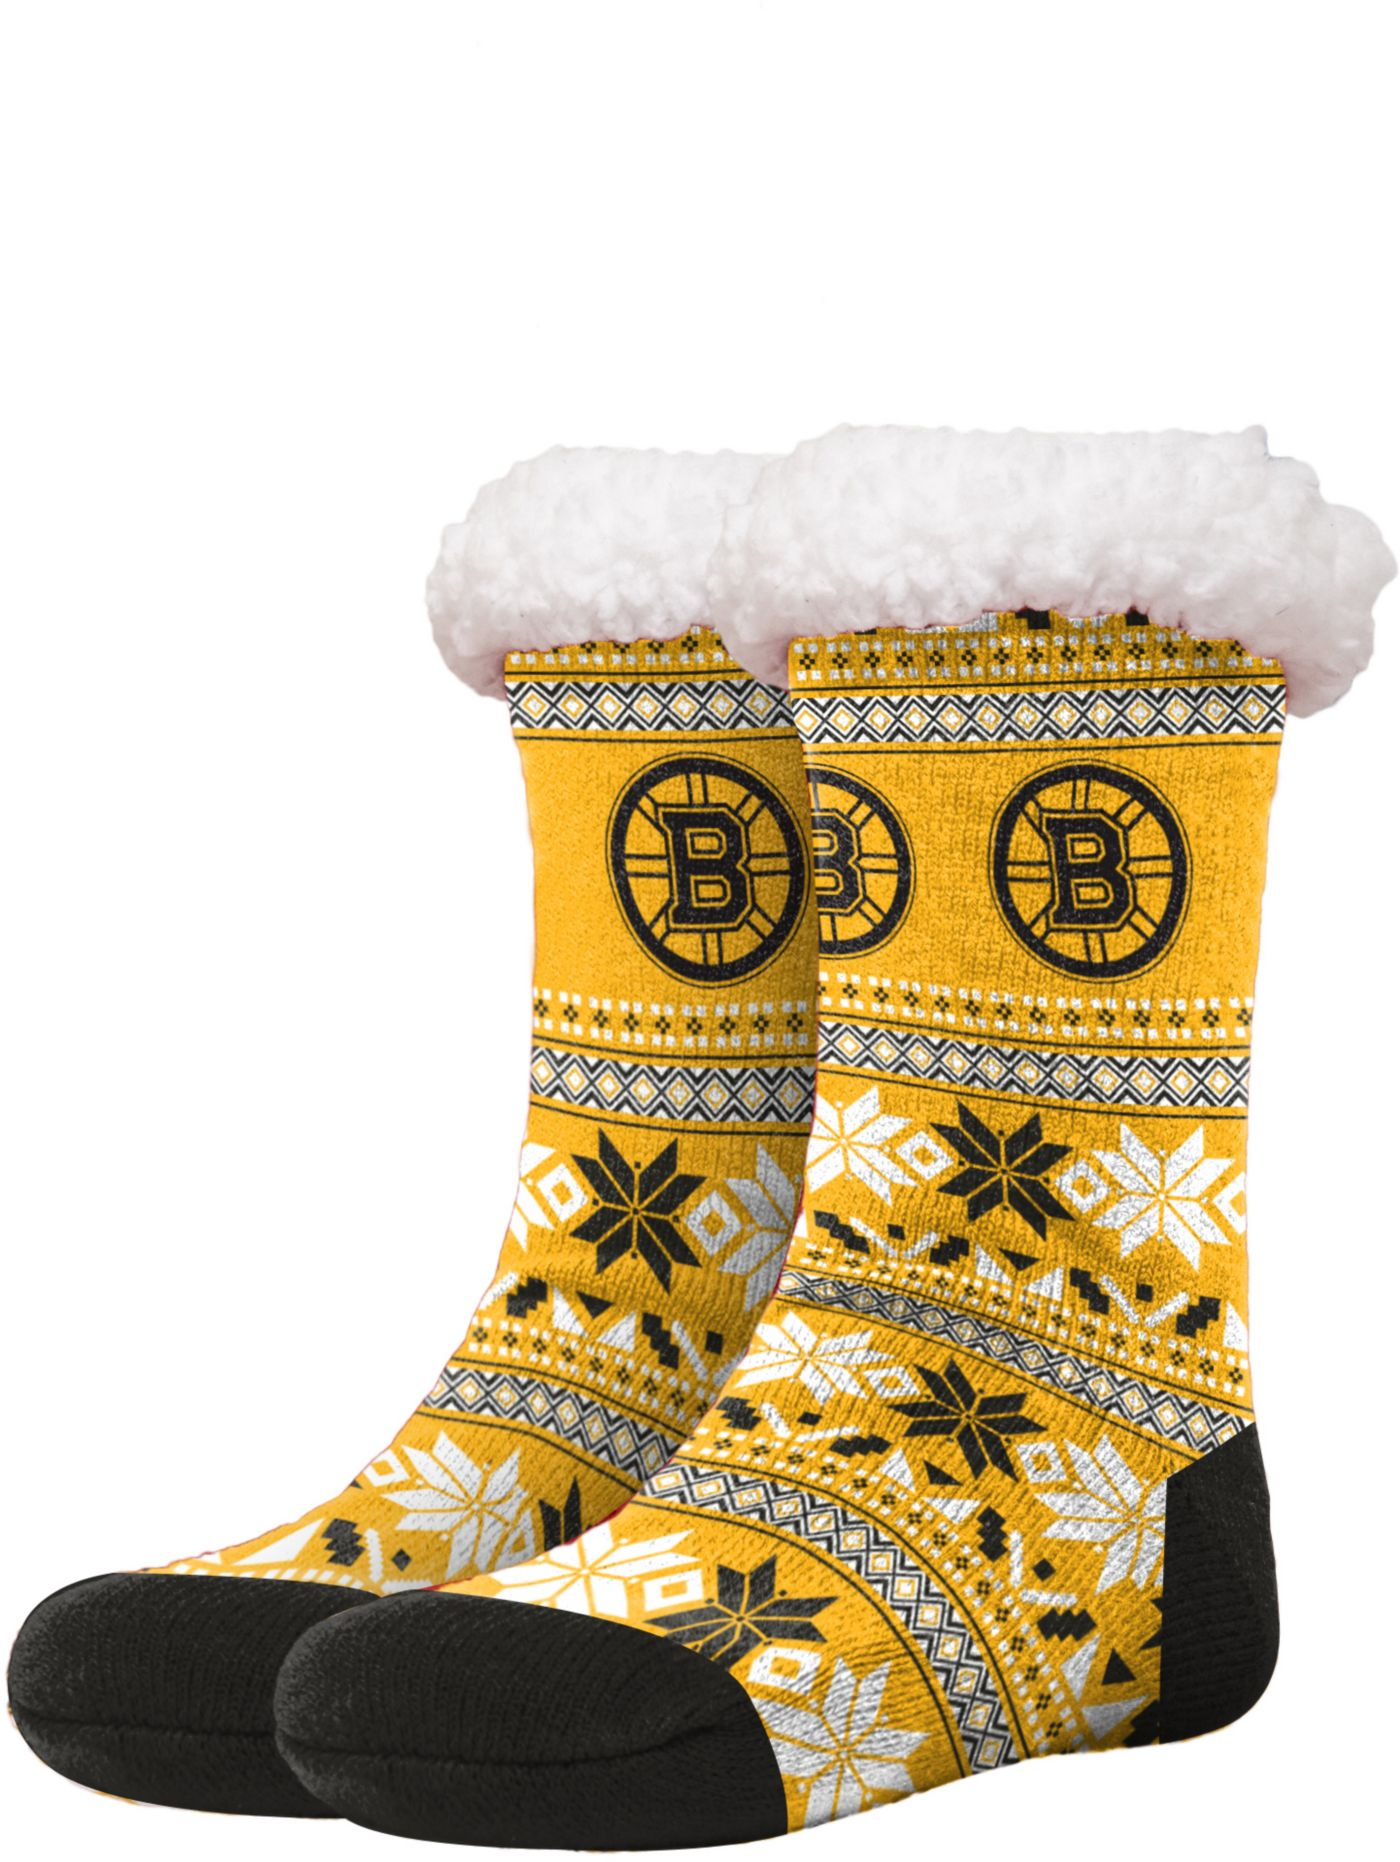 FOCO Boston Bruins Footy Slippers